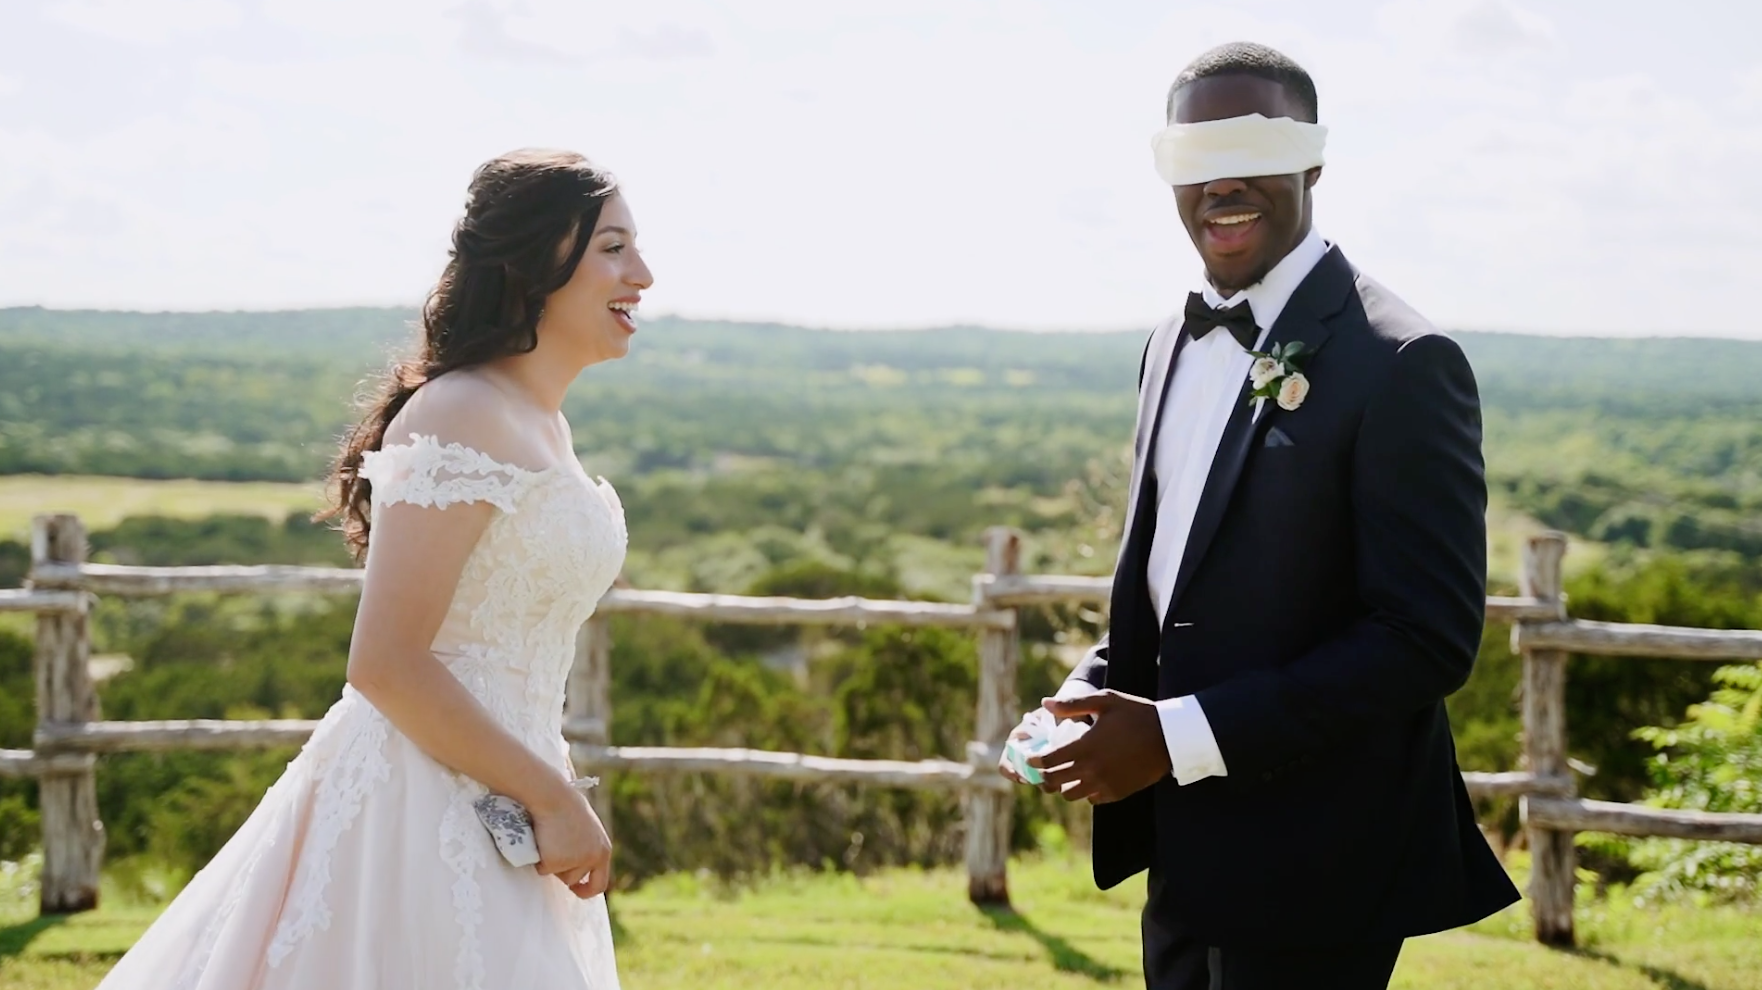 Interracial couple has best first look at rustic wedding